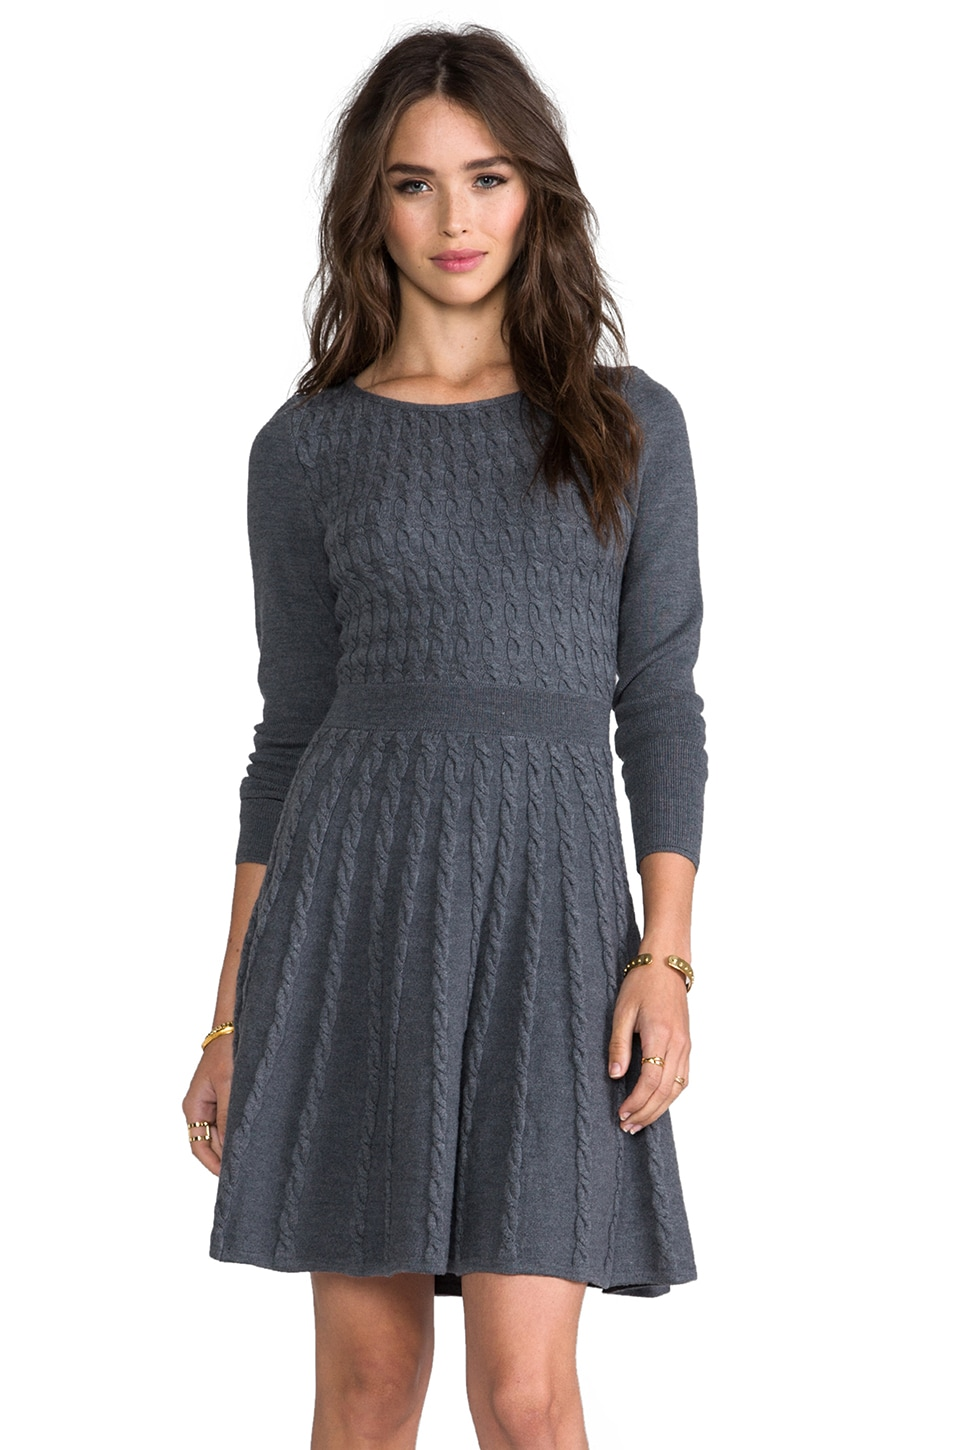 MILLY Cable Fit and Flare Sweater Dress in Graphite